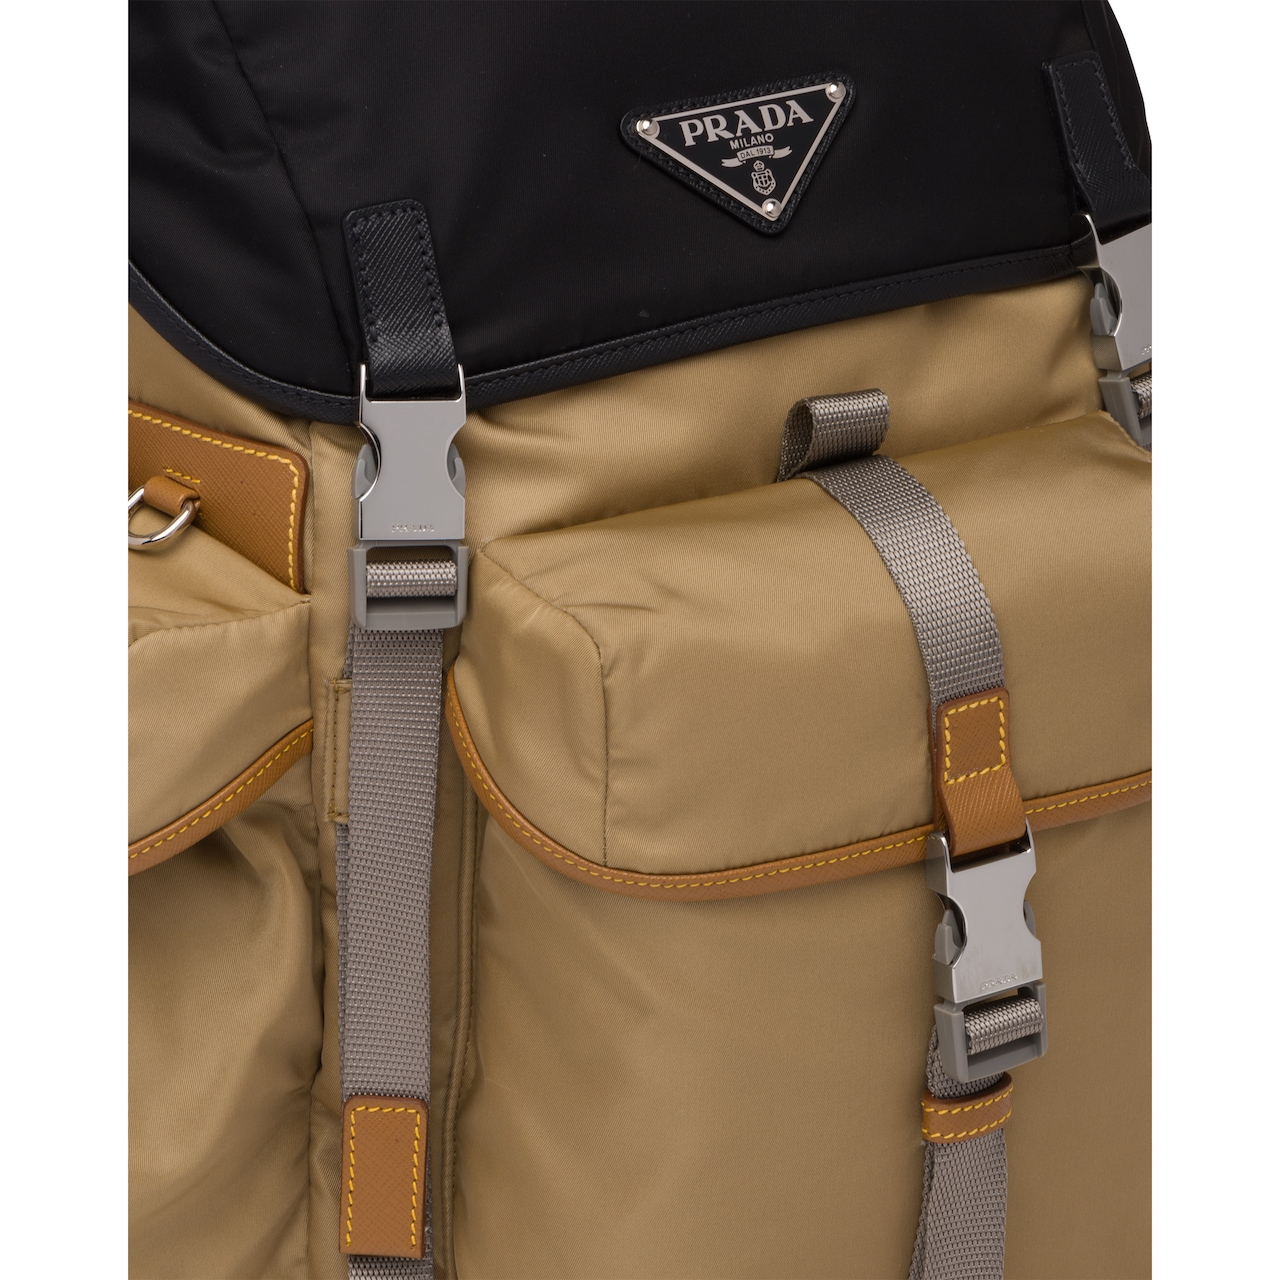 Prada Technical fabric and Saffiano leather backpack 6